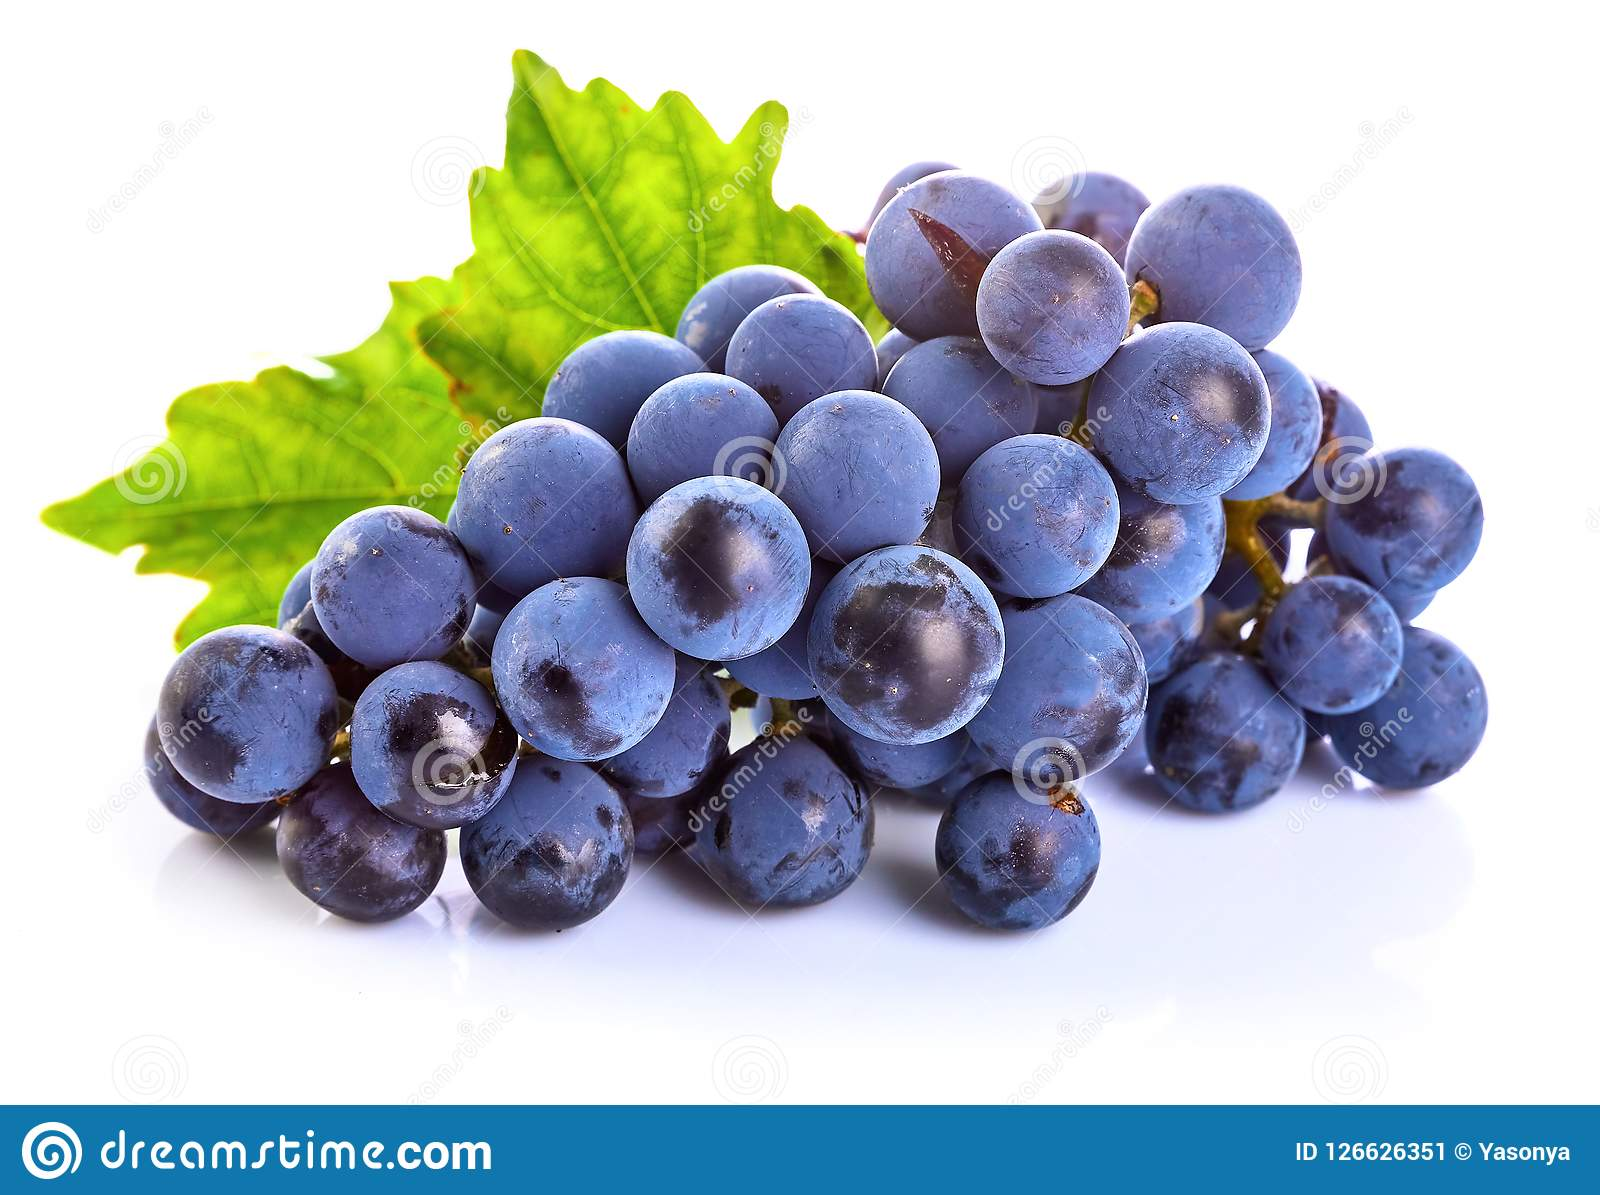 Blue grapes with green leaf healthy eating.